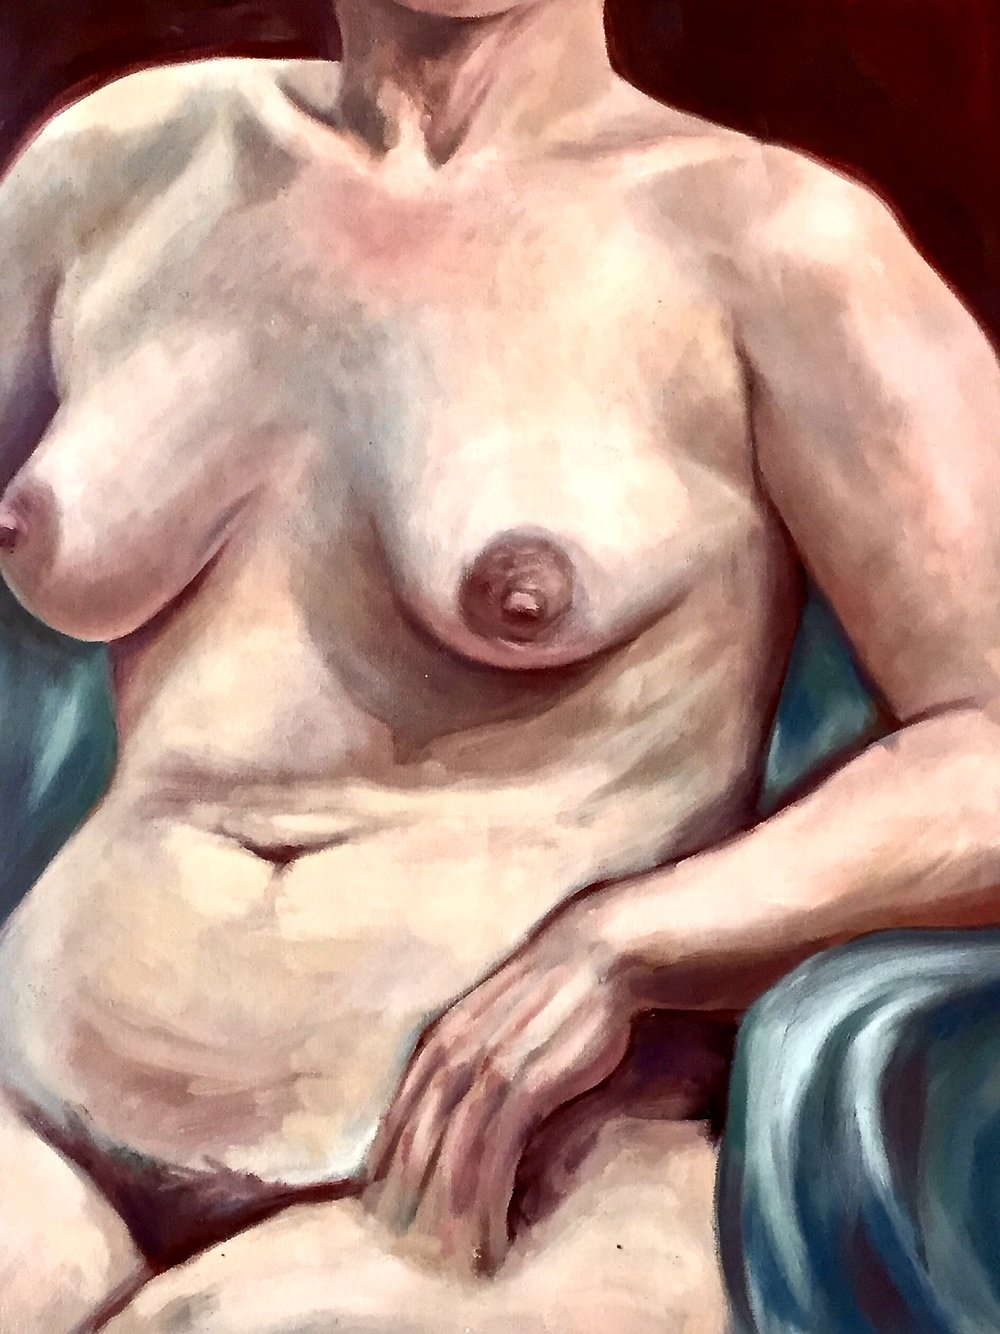 Vulnerable -  2001 oil on canvas 38cm x 51cm